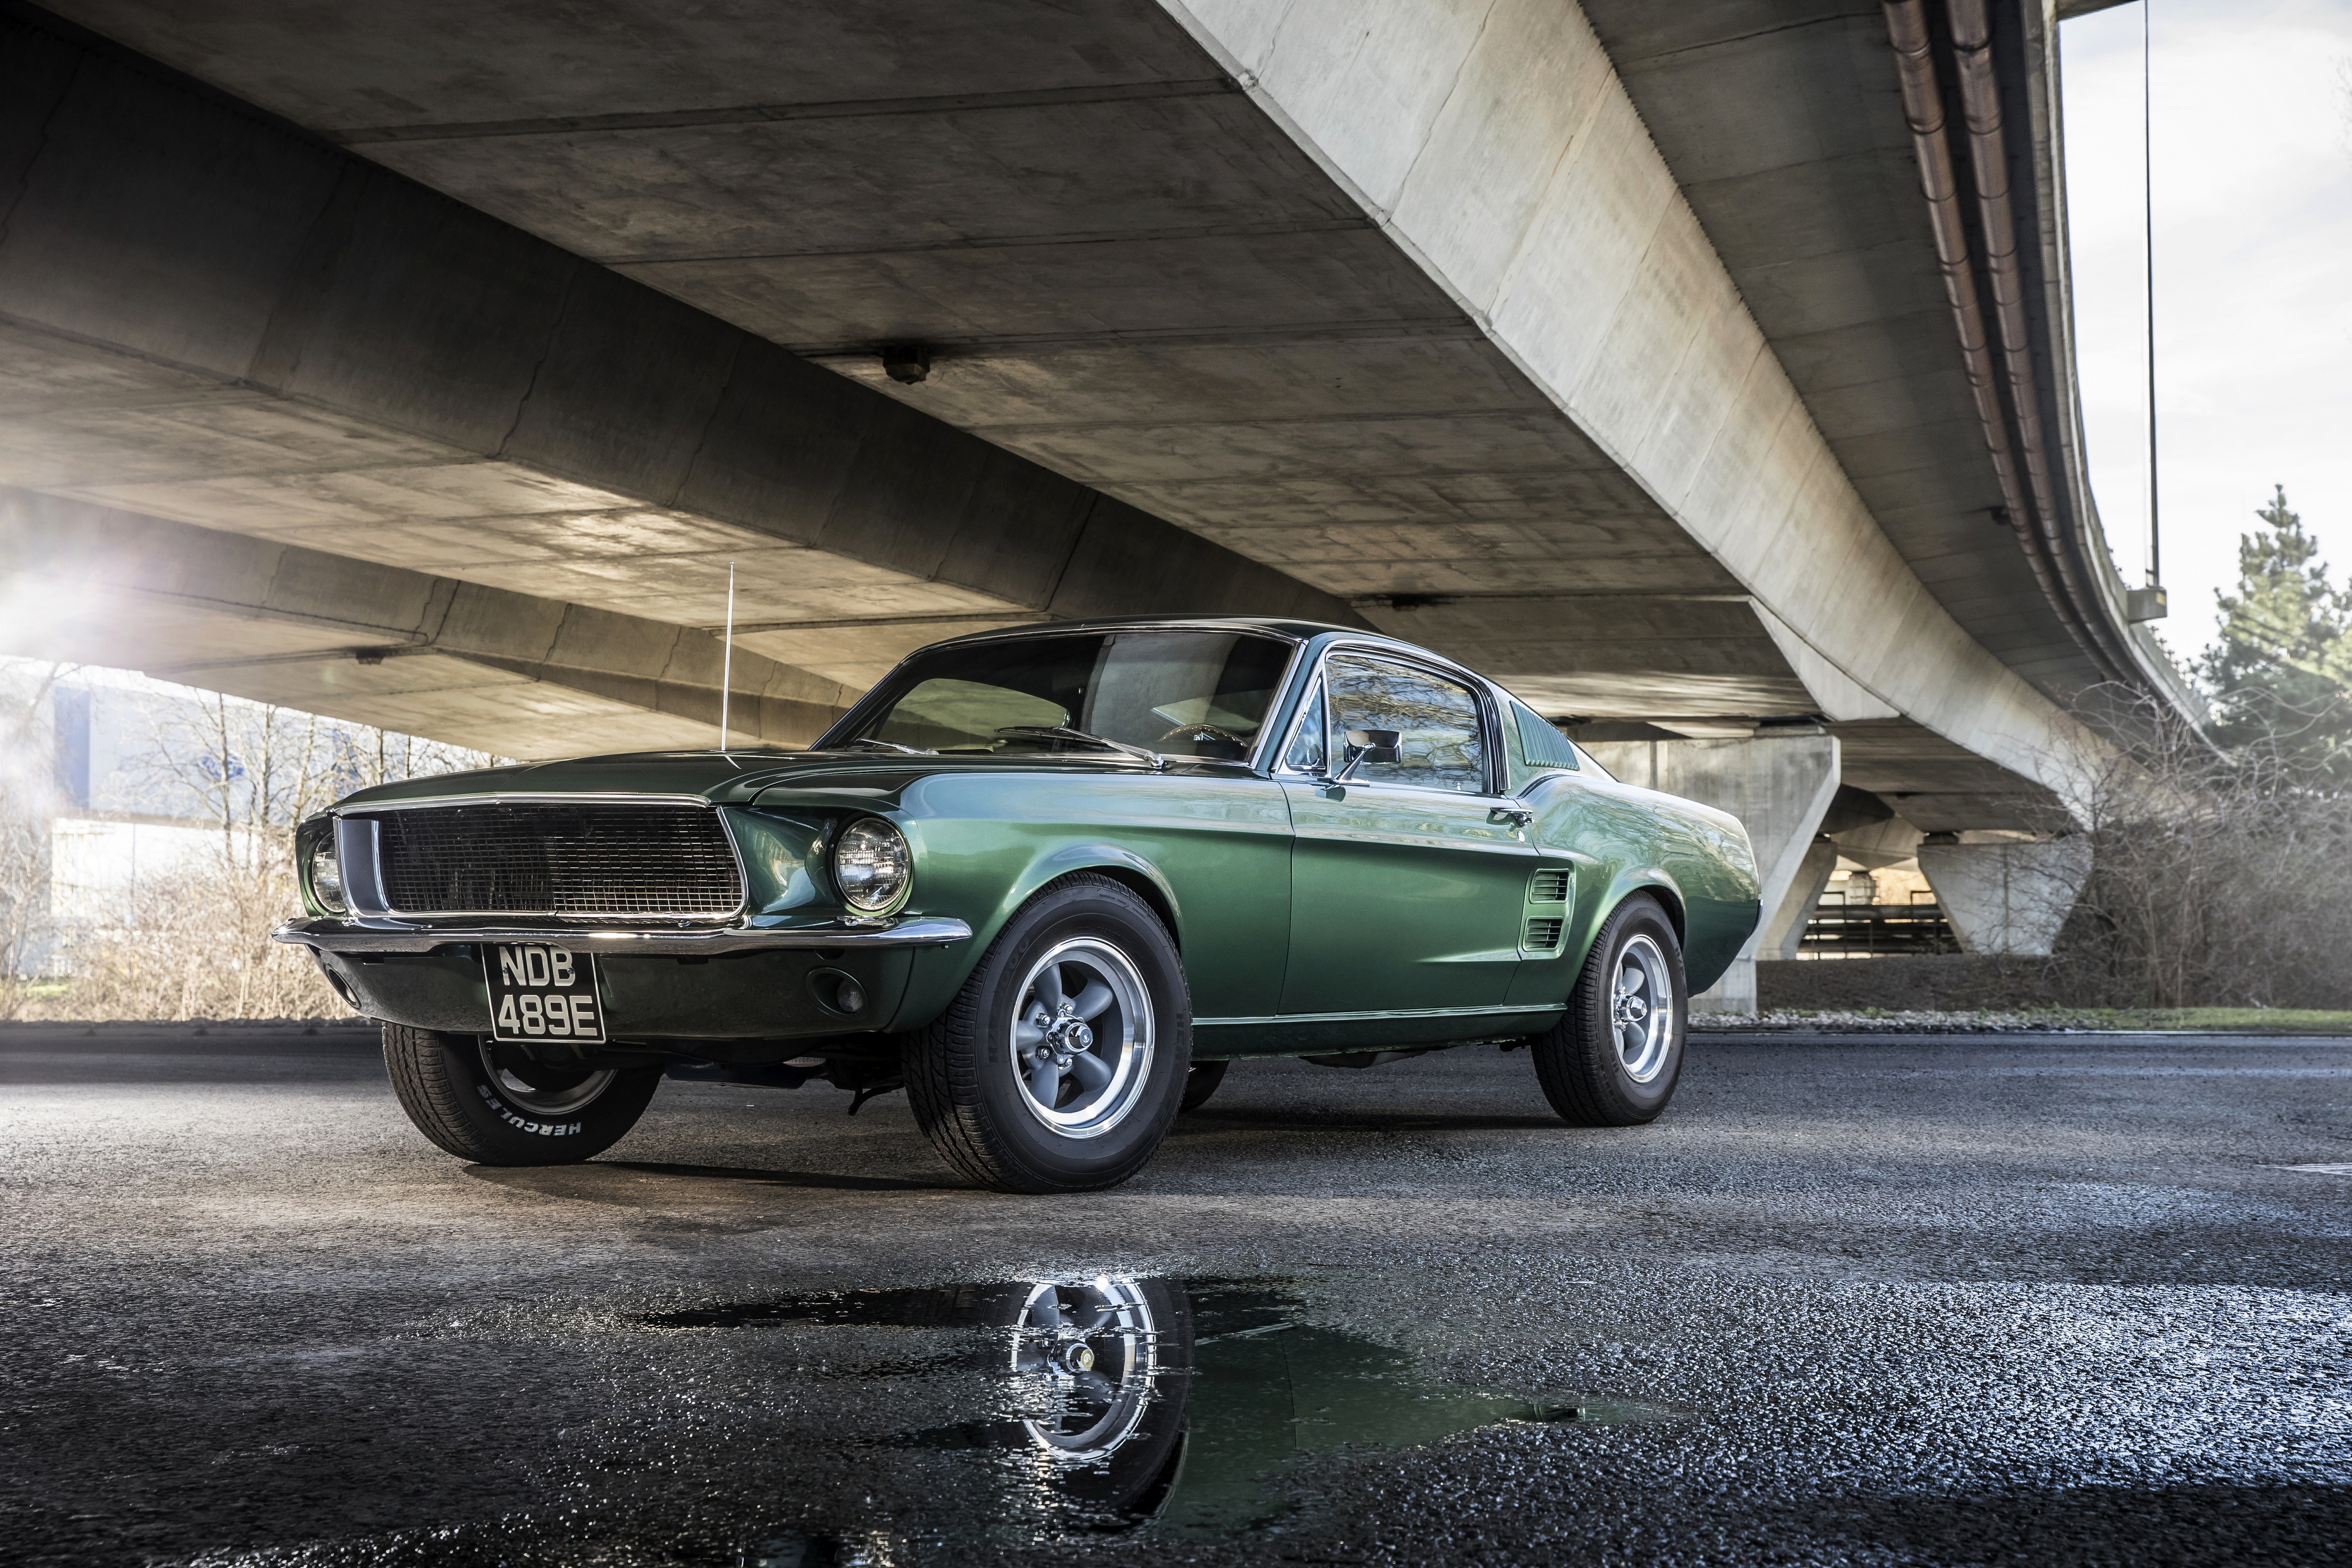 65 vehicles matched now showing page 1 of 5. 1968 Ford Mustang Ultimate In Depth Guide